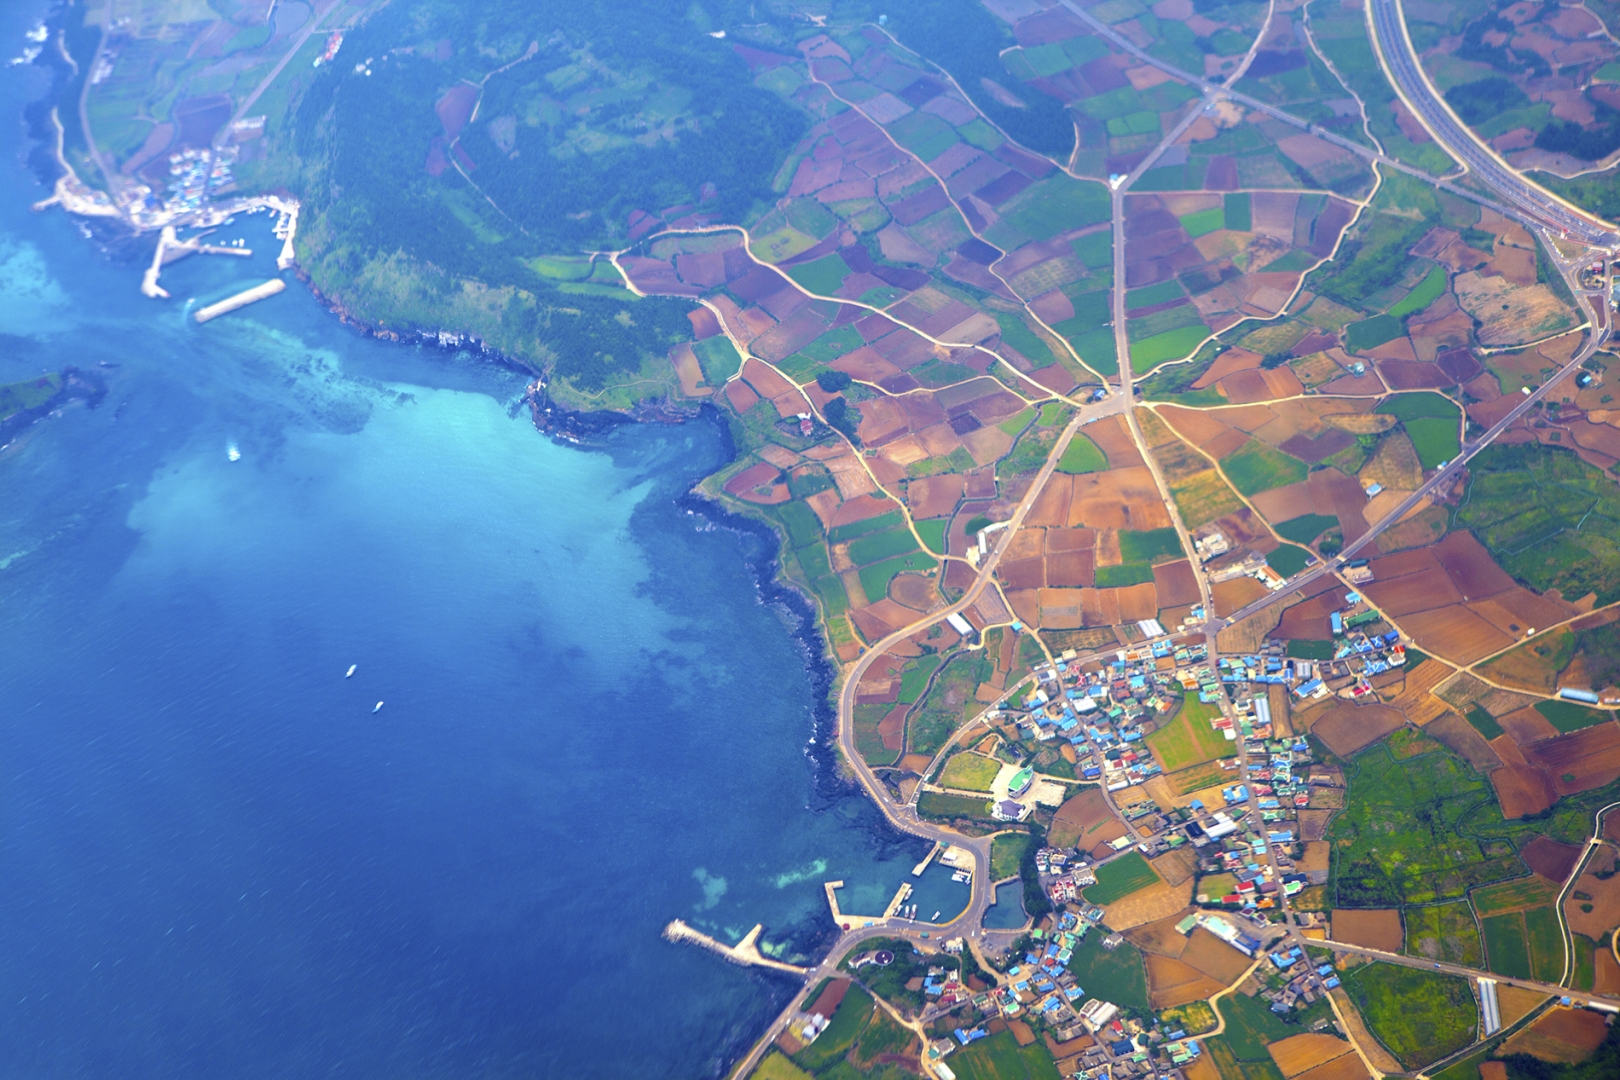 aerial photo of bay